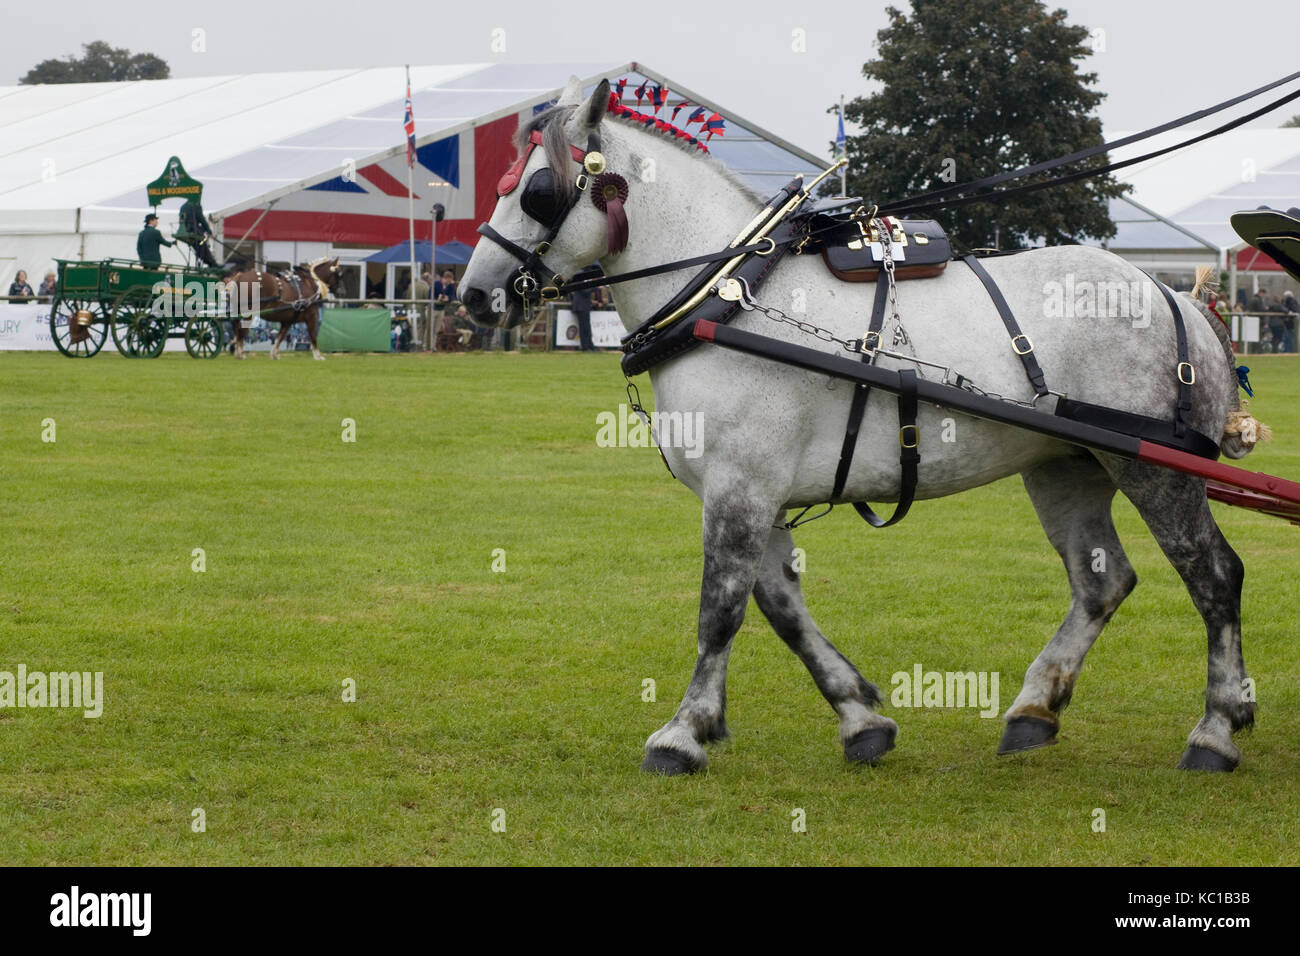 Grey draught horse at a showground in full harness - Stock Image